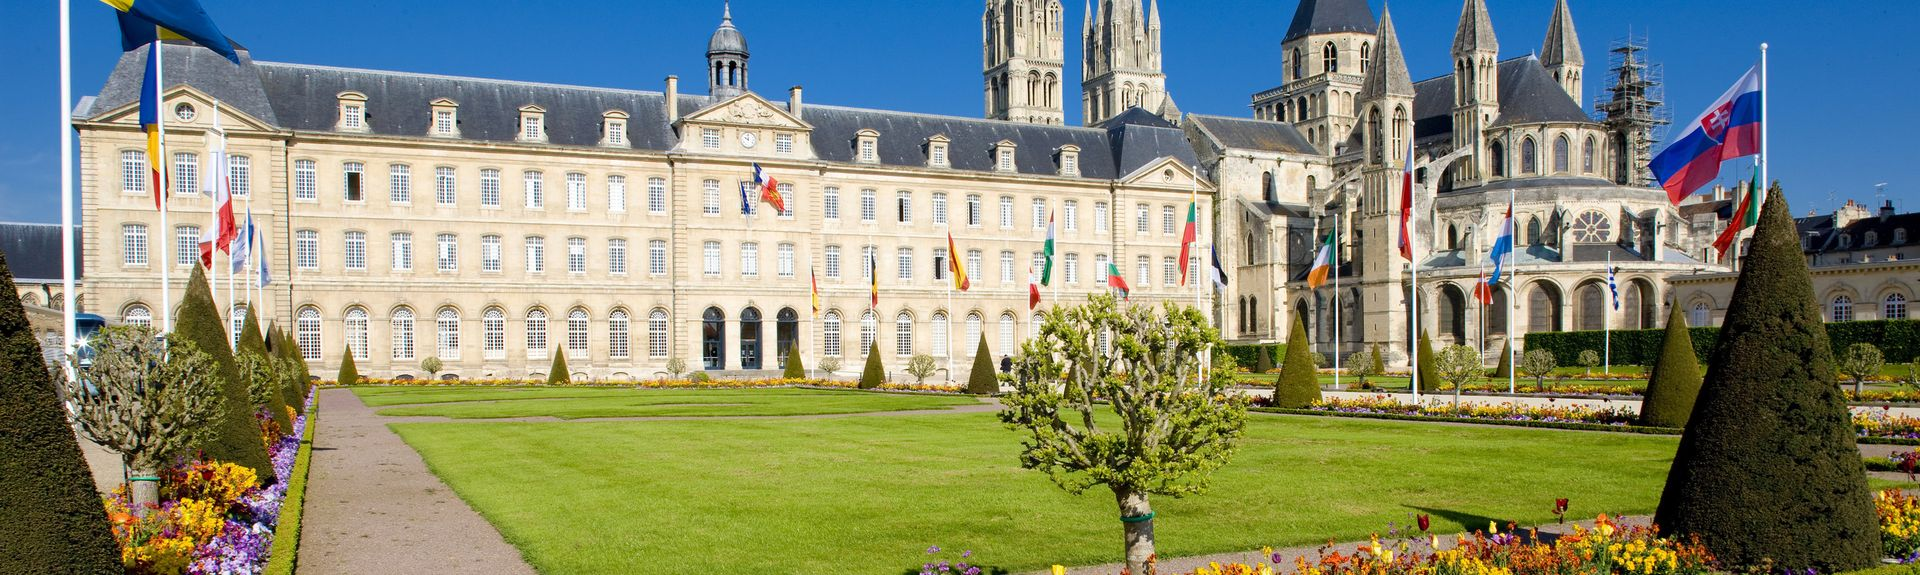 Caen, Calvados (department), France